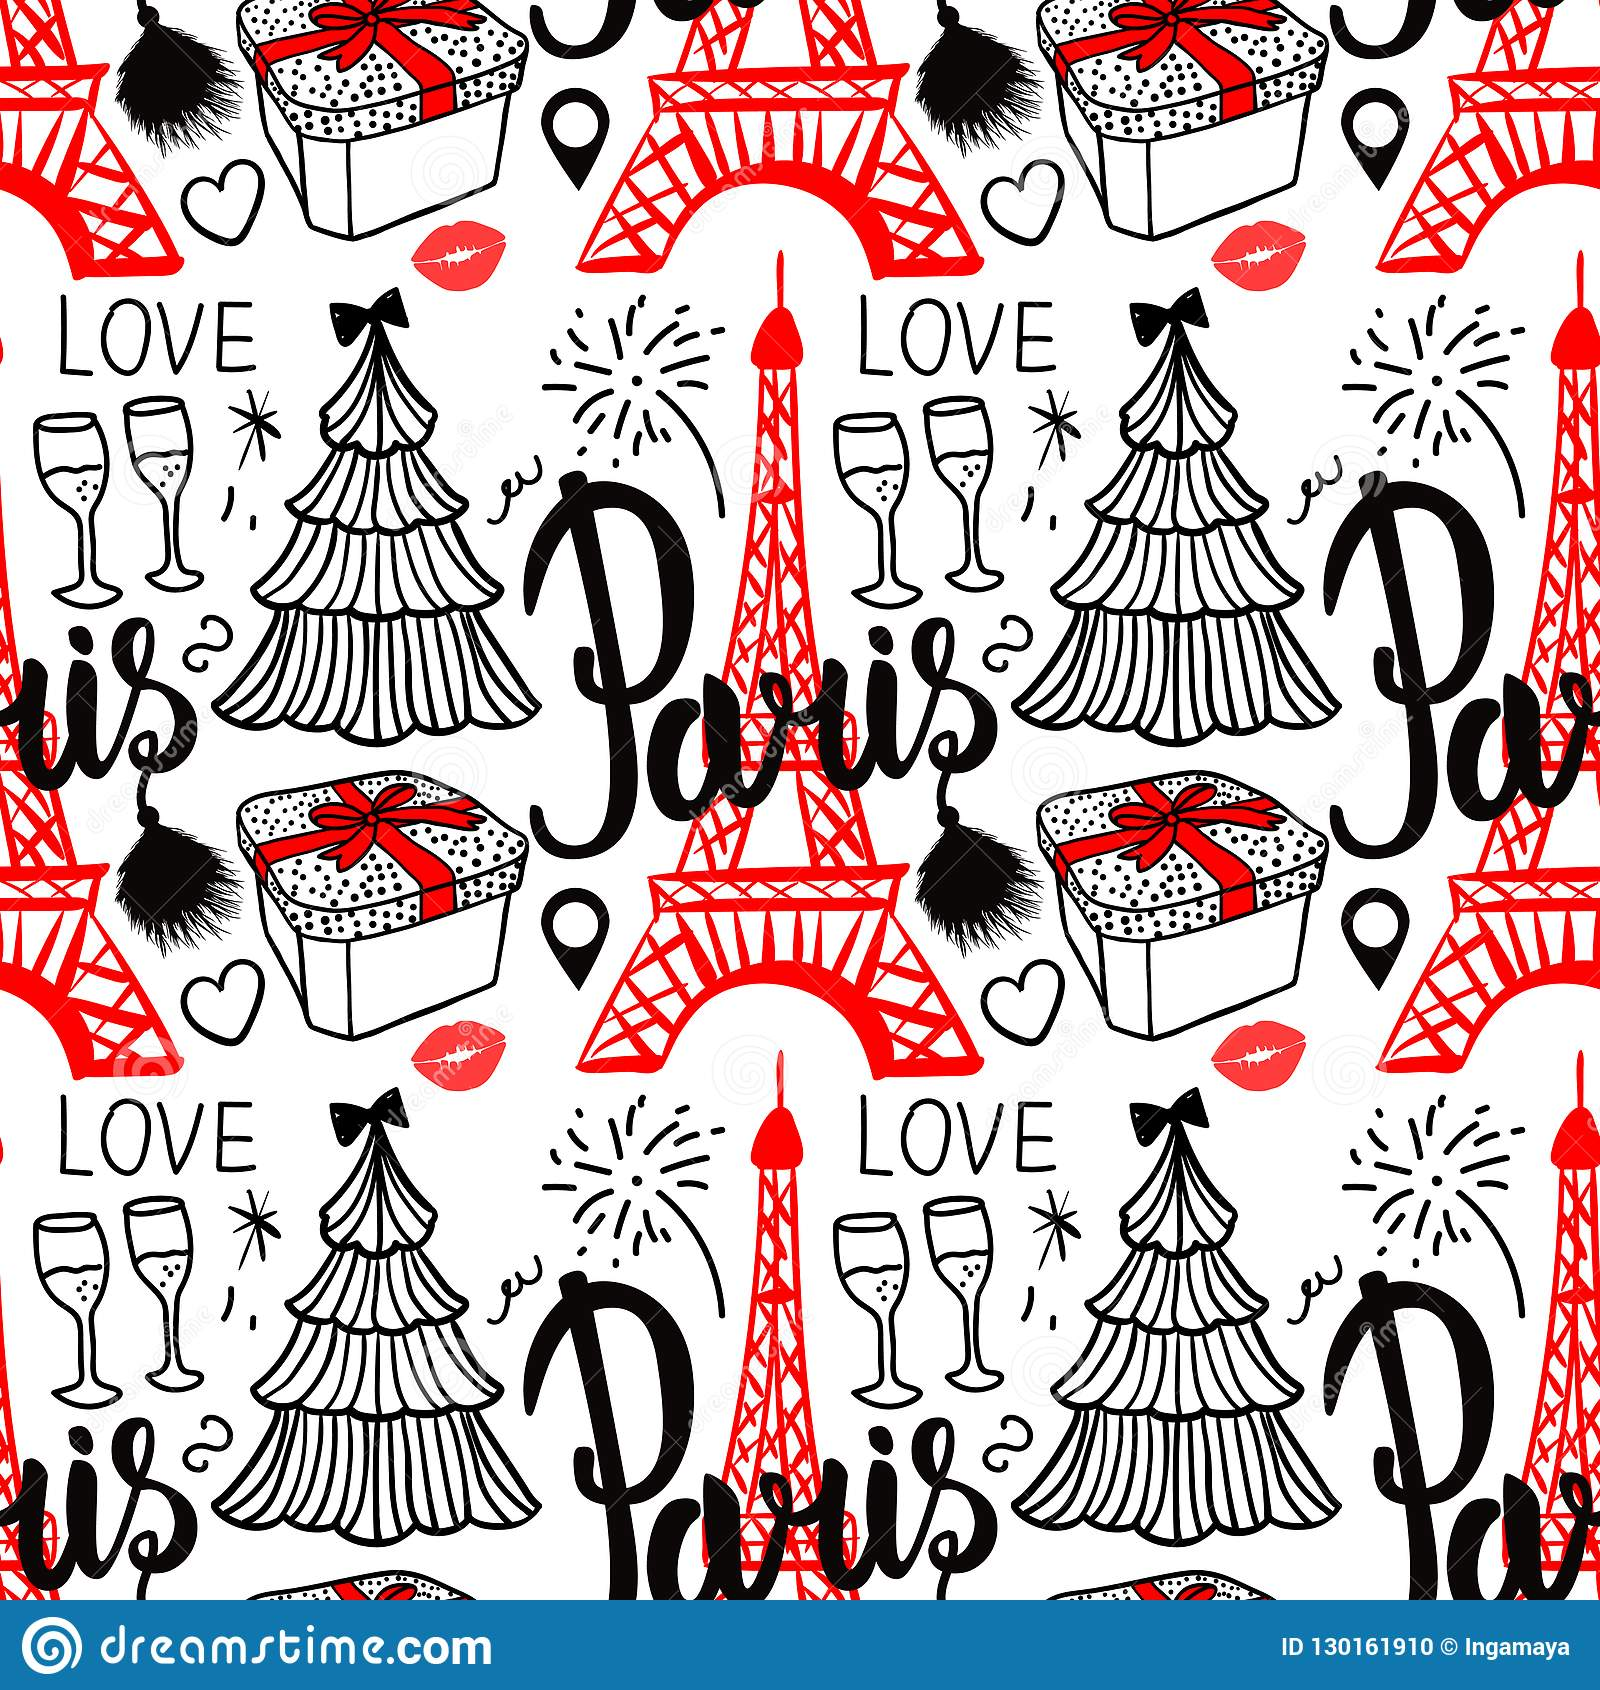 Lettering Paris and Eiffel Tower. Seamless pattern Merry Christmas and Happy new year fashion sketch gift box, tree and